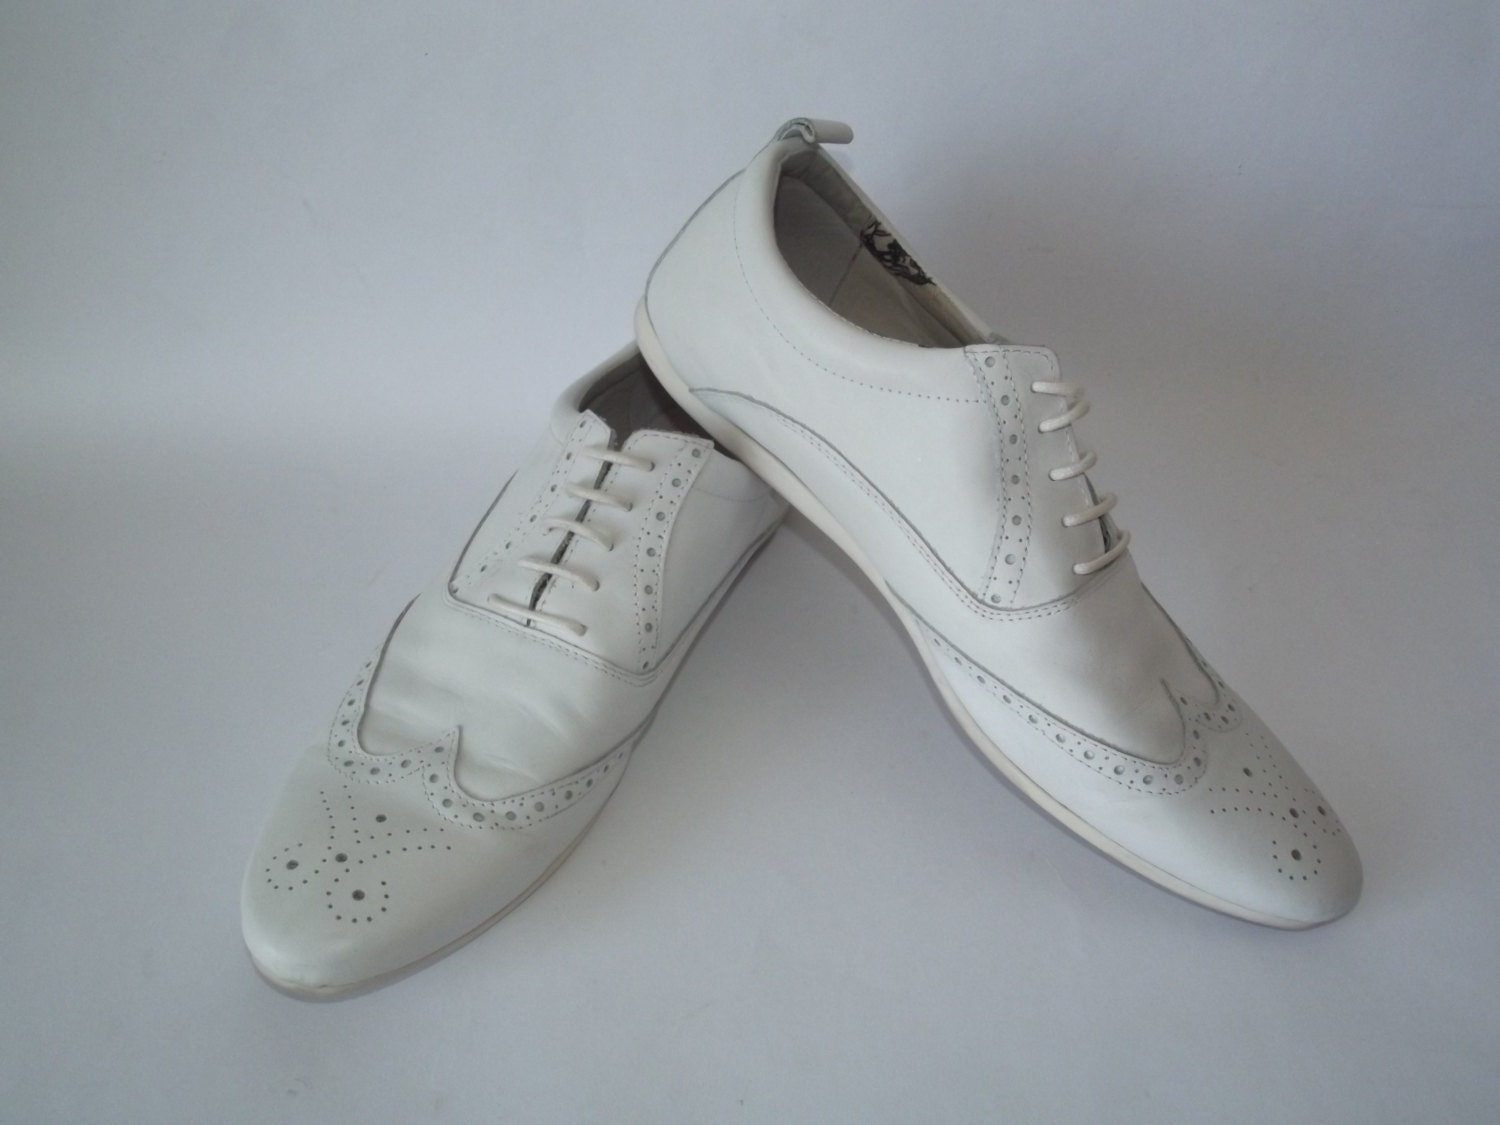 size 12 13 white brogue oxfords lace up shoes brogue